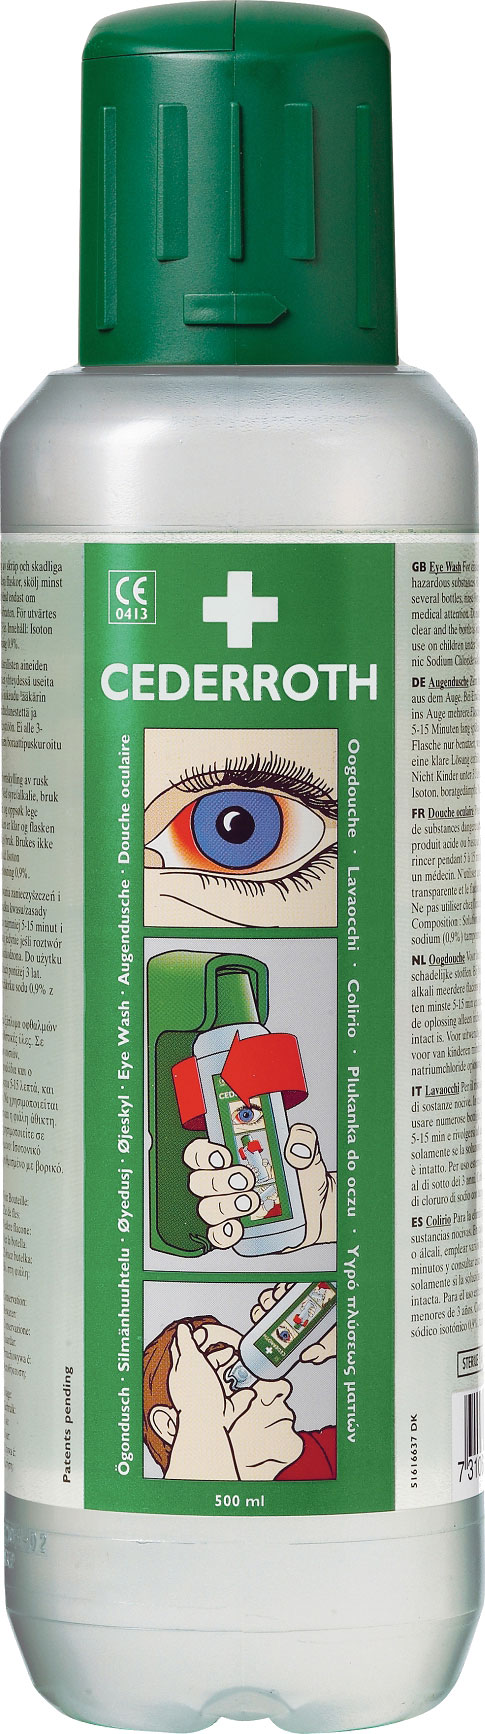 CEDERROTH 500ML EYEWASH BOTTLE - CM0727